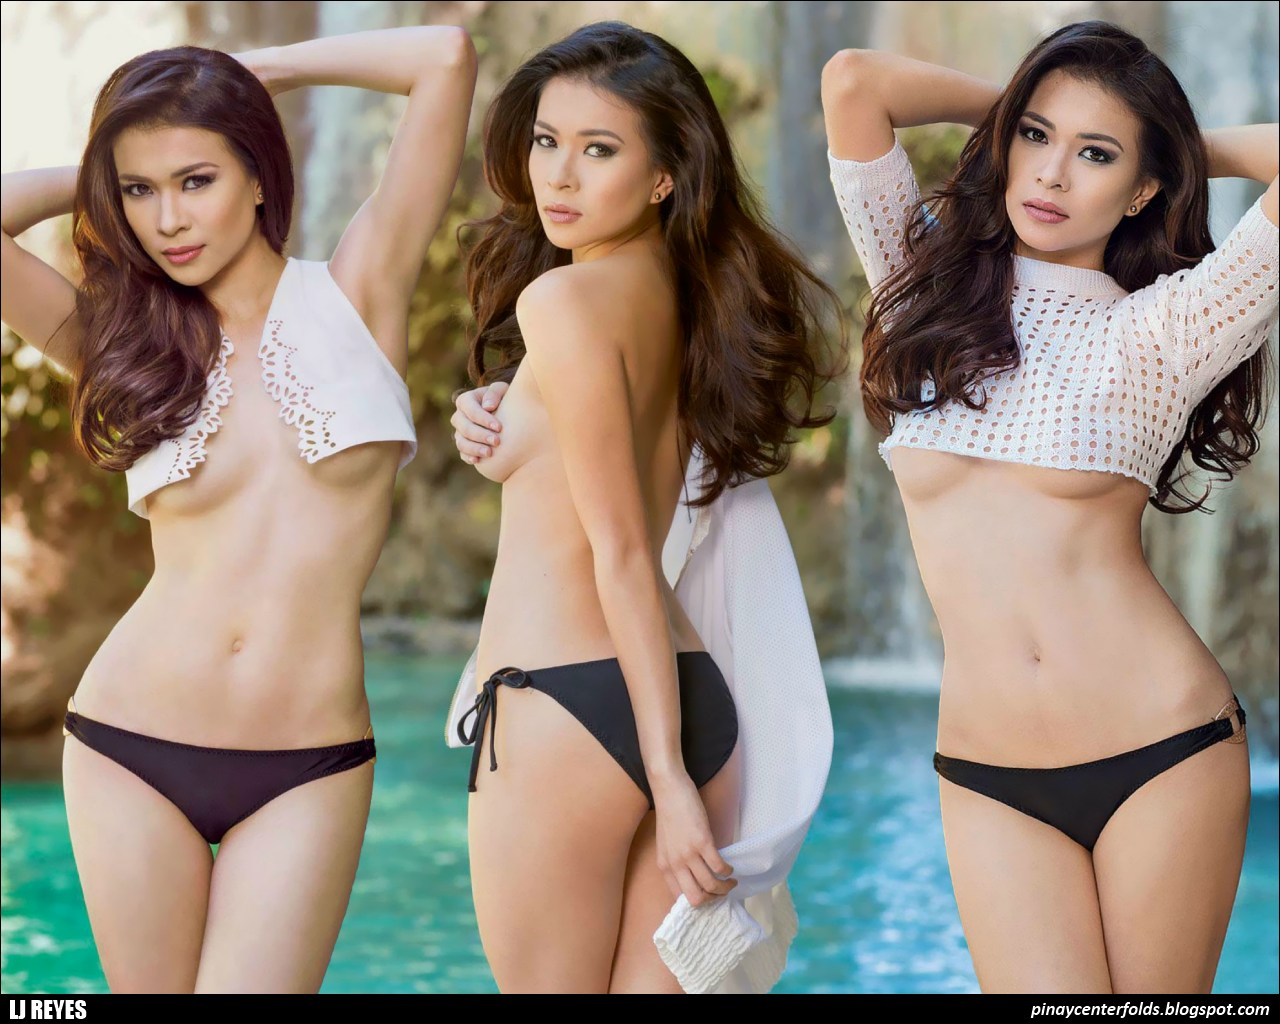 Pinay celebrity actress nude pic